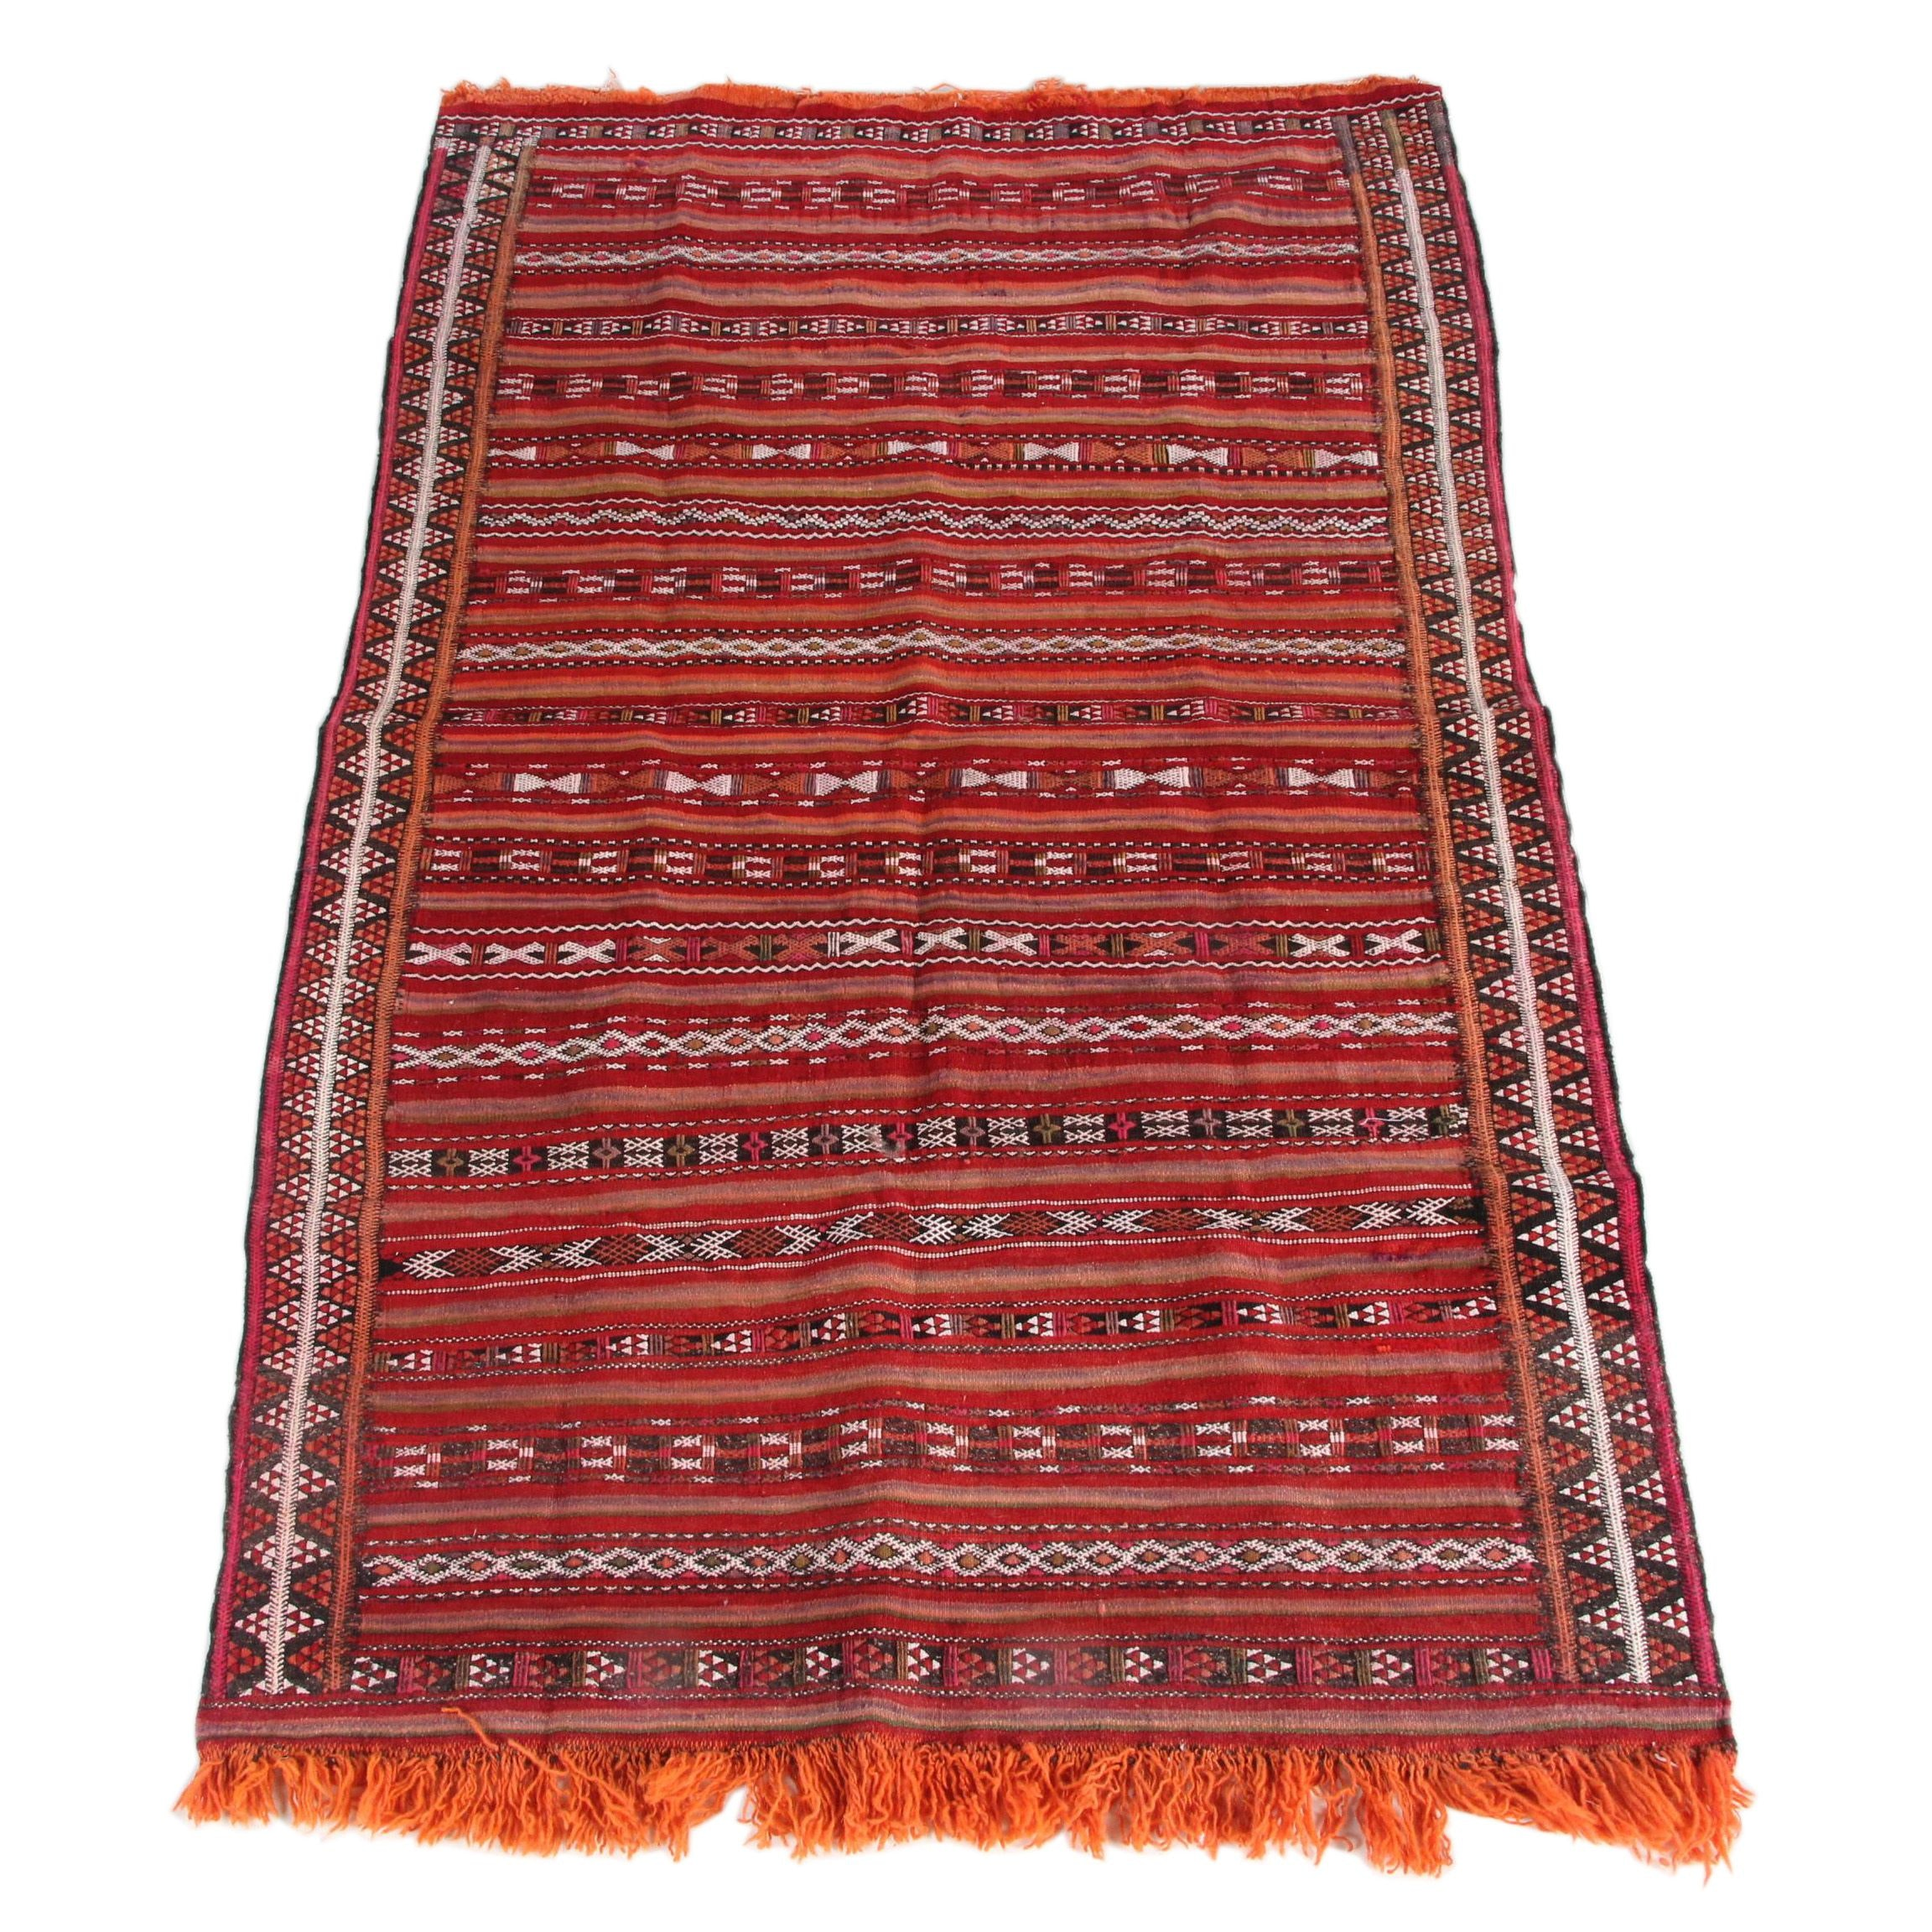 Handwoven and Embroidered Moroccan Wool Area Rug